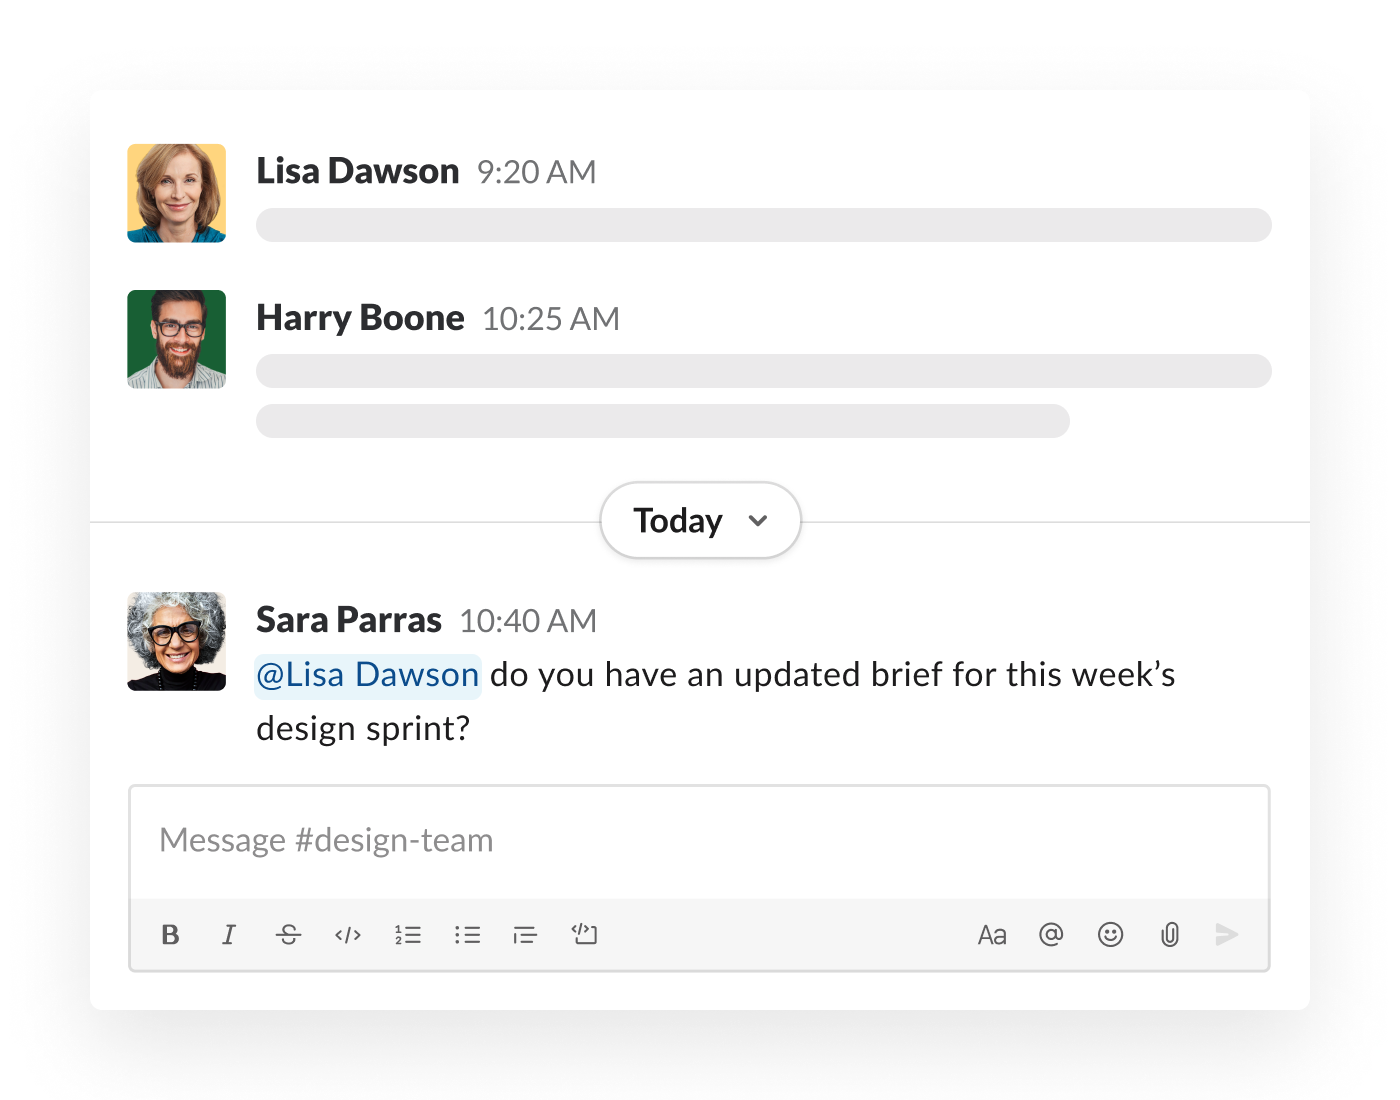 A mention included in a message in a Slack conversation